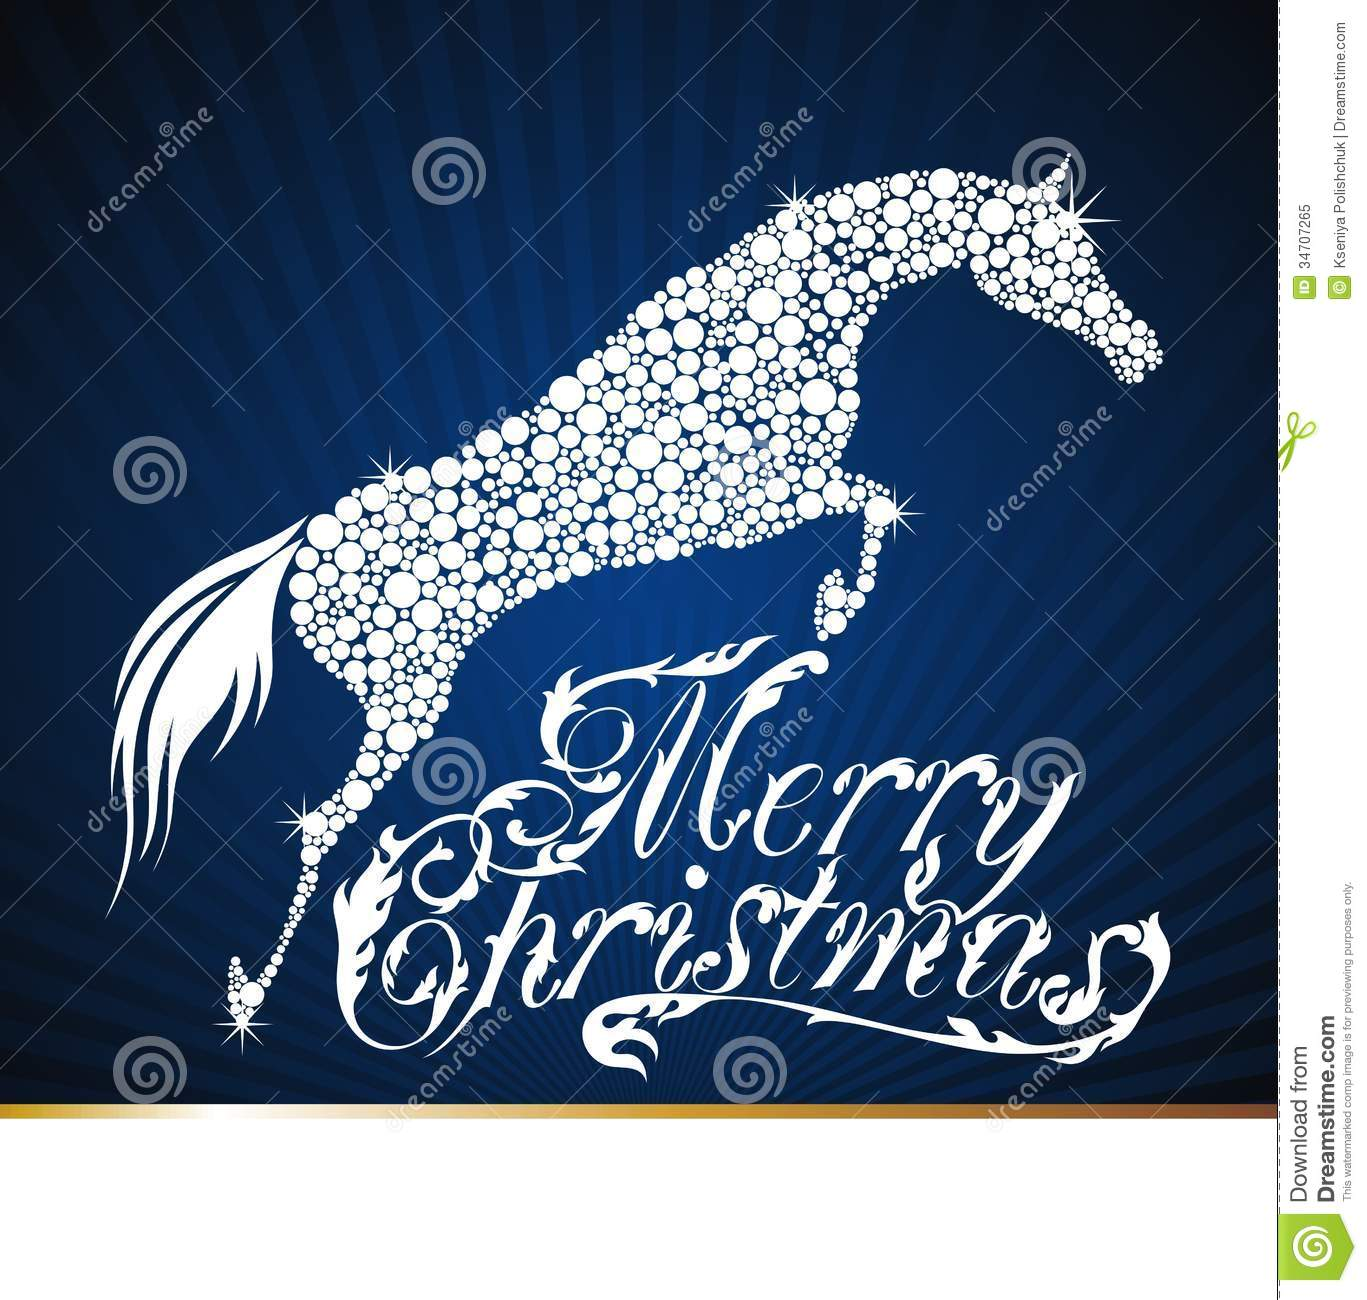 Horse. Merry Christmas 2014 Stock Vector - Illustration of concept ...